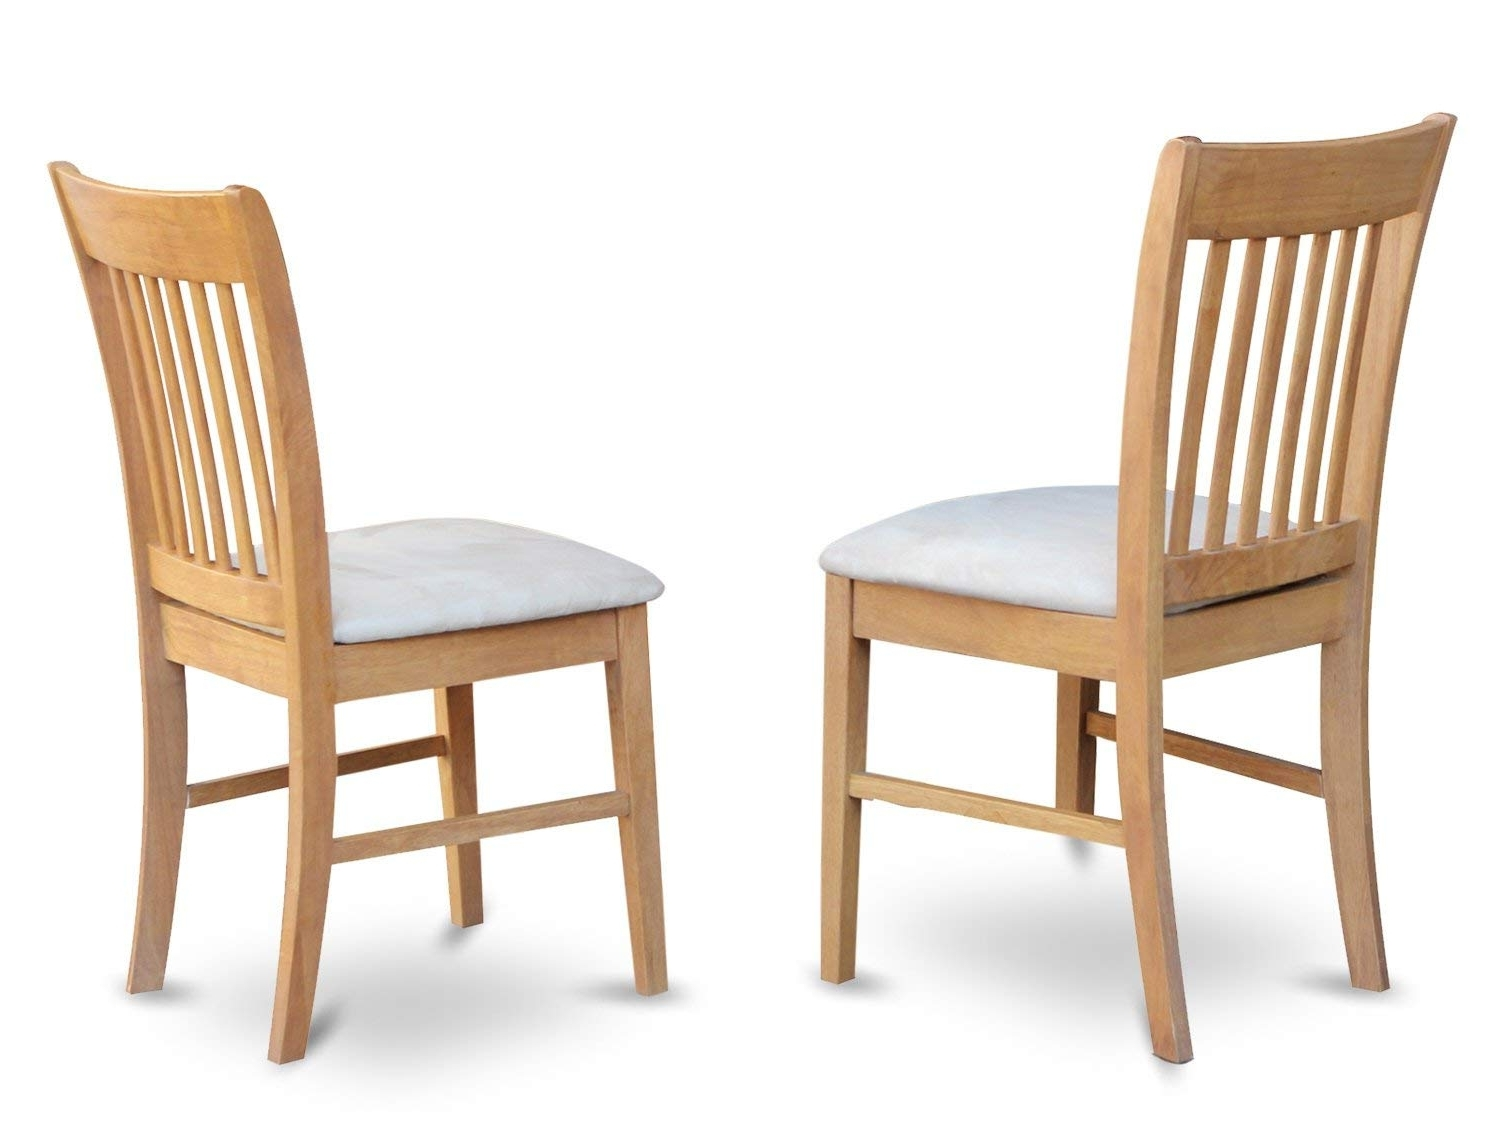 Amazon – East West Furniture Nfc Oak C Kitchen/dining Chair Set Pertaining To 2017 Oak Dining Chairs (View 9 of 25)